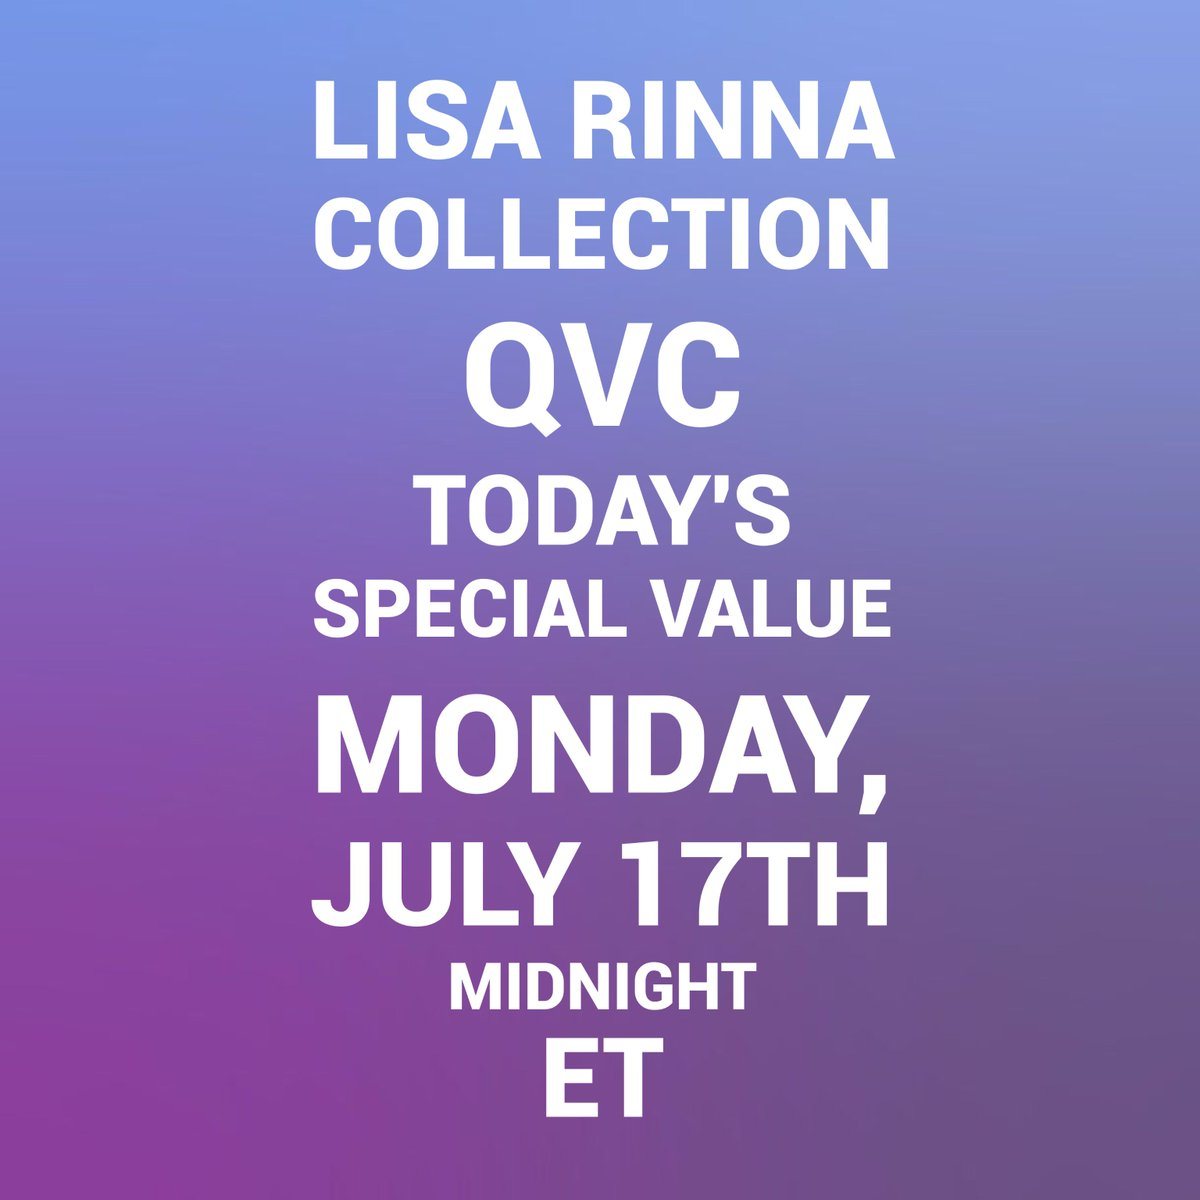 This Monday, get ready to shop with me on @QVC ???????????? https://t.co/2jhoCeFXUs